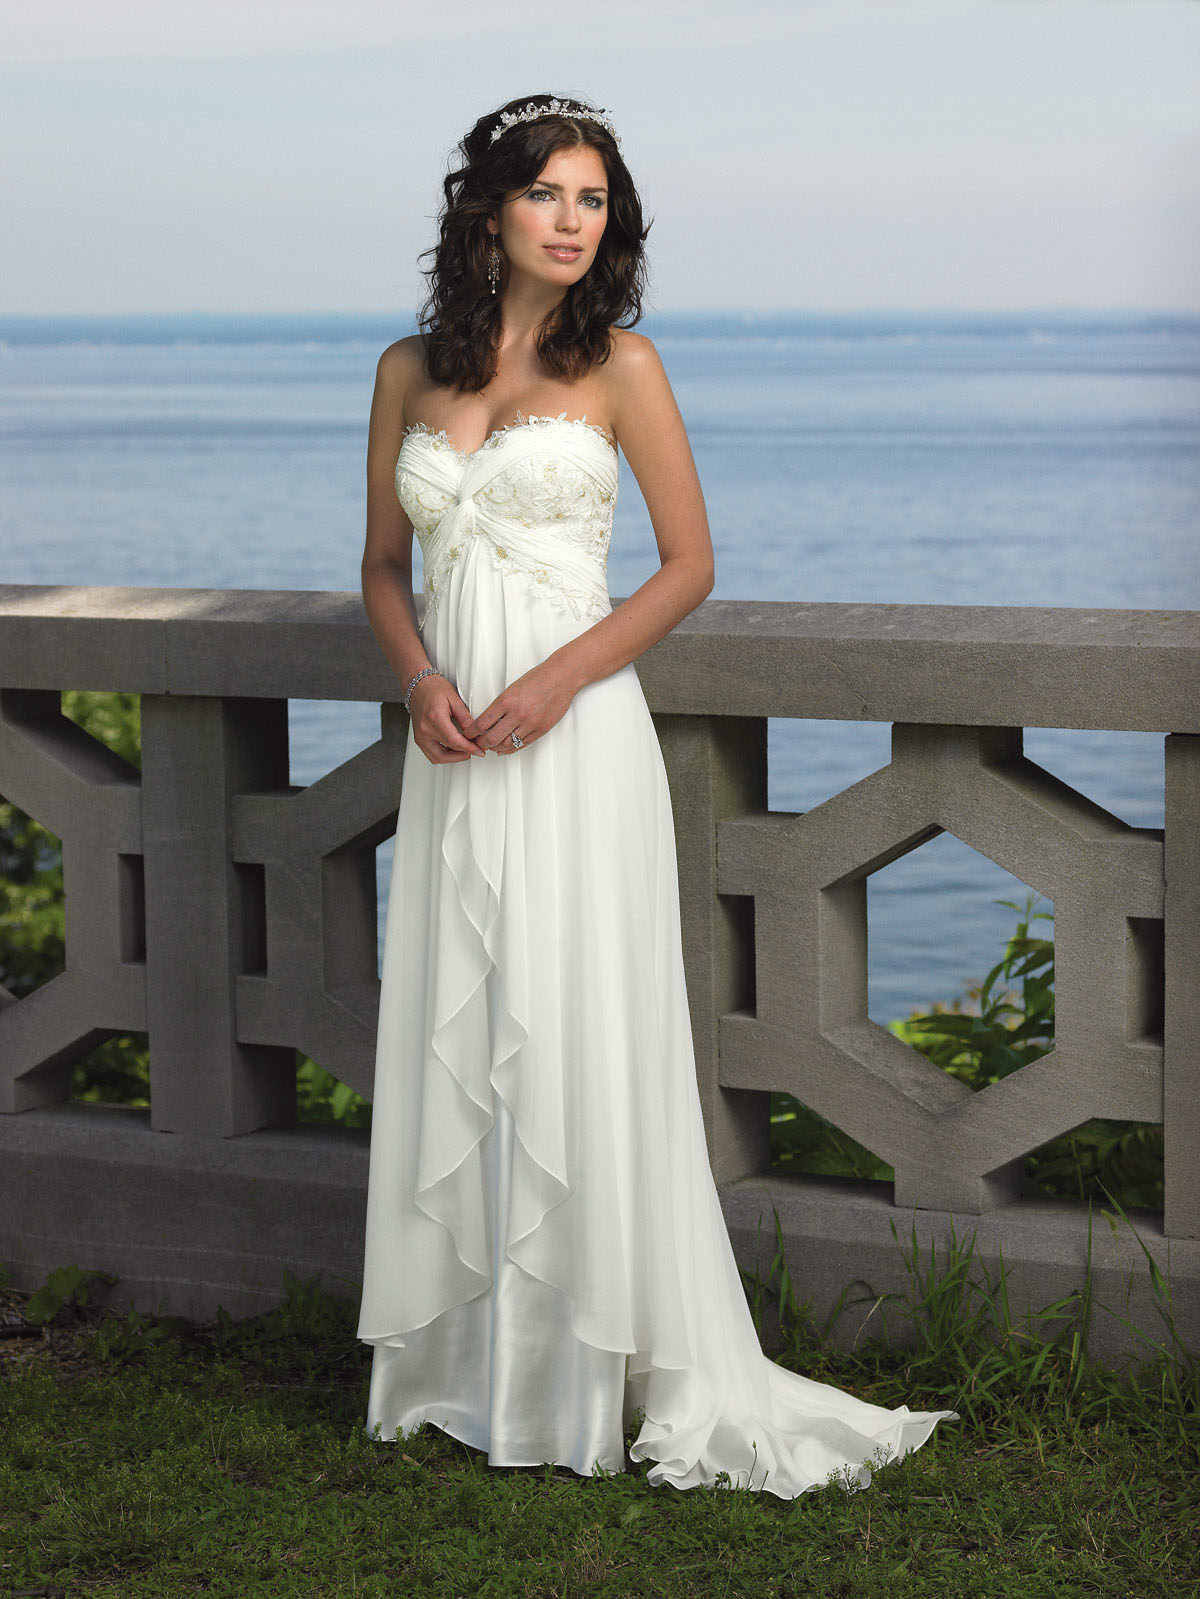 Top 10 perfect beach wedding dresses of 2014 for Best wedding dresses for beach weddings